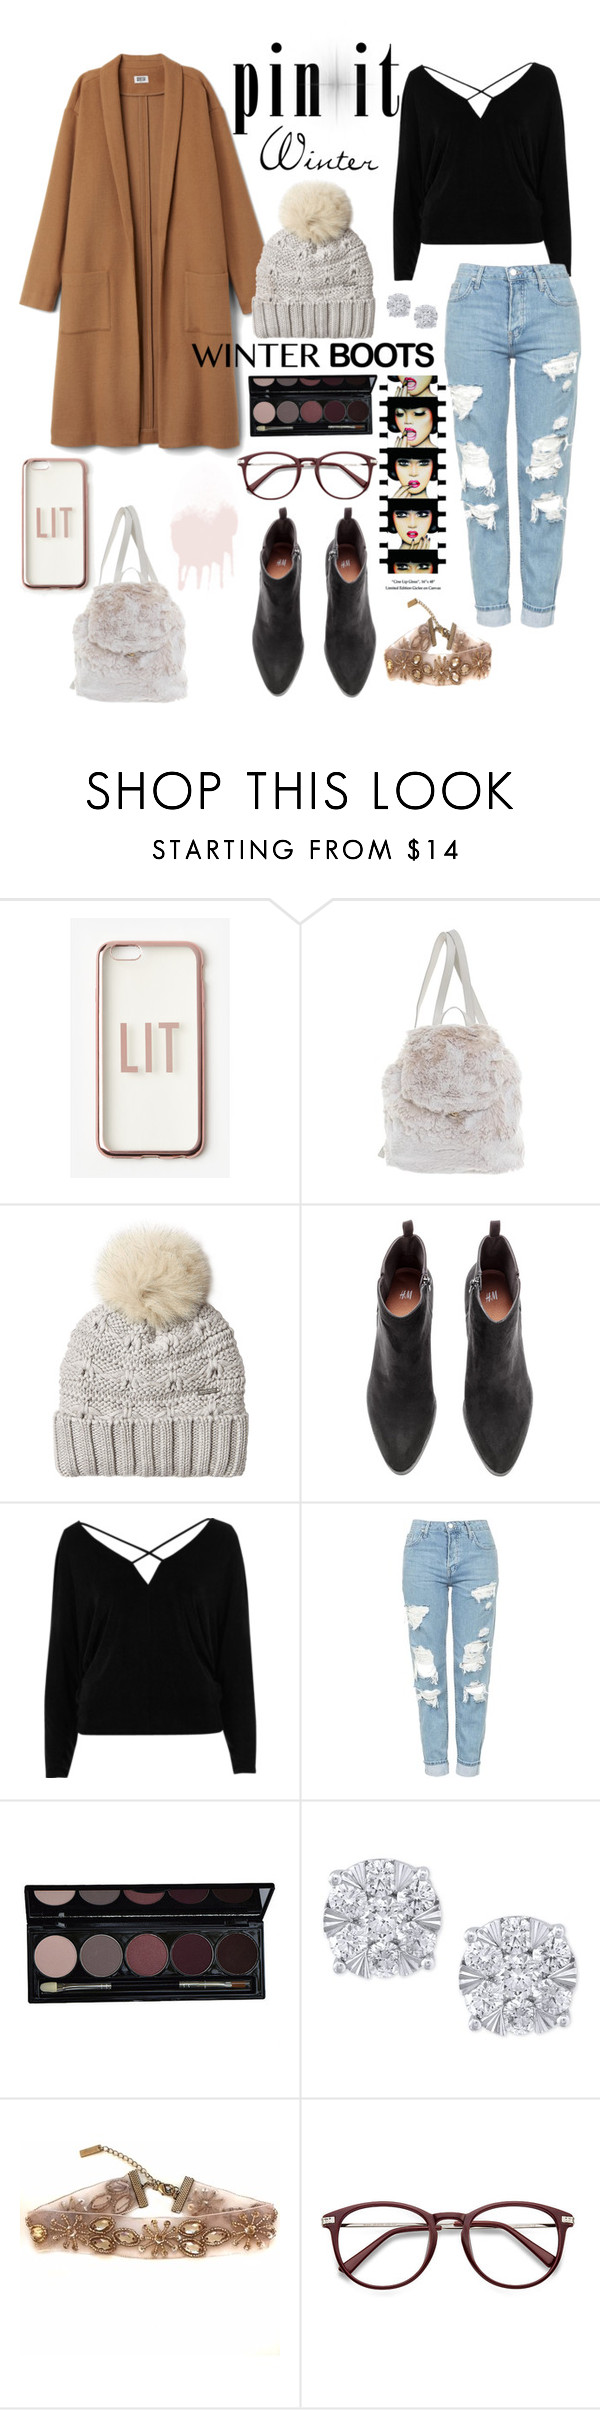 """^culture^"" by abigail-olson-1 ❤ liked on Polyvore featuring Missguided, Prada, Woolrich, River Island, Topshop, Anja and Effy Jewelry"